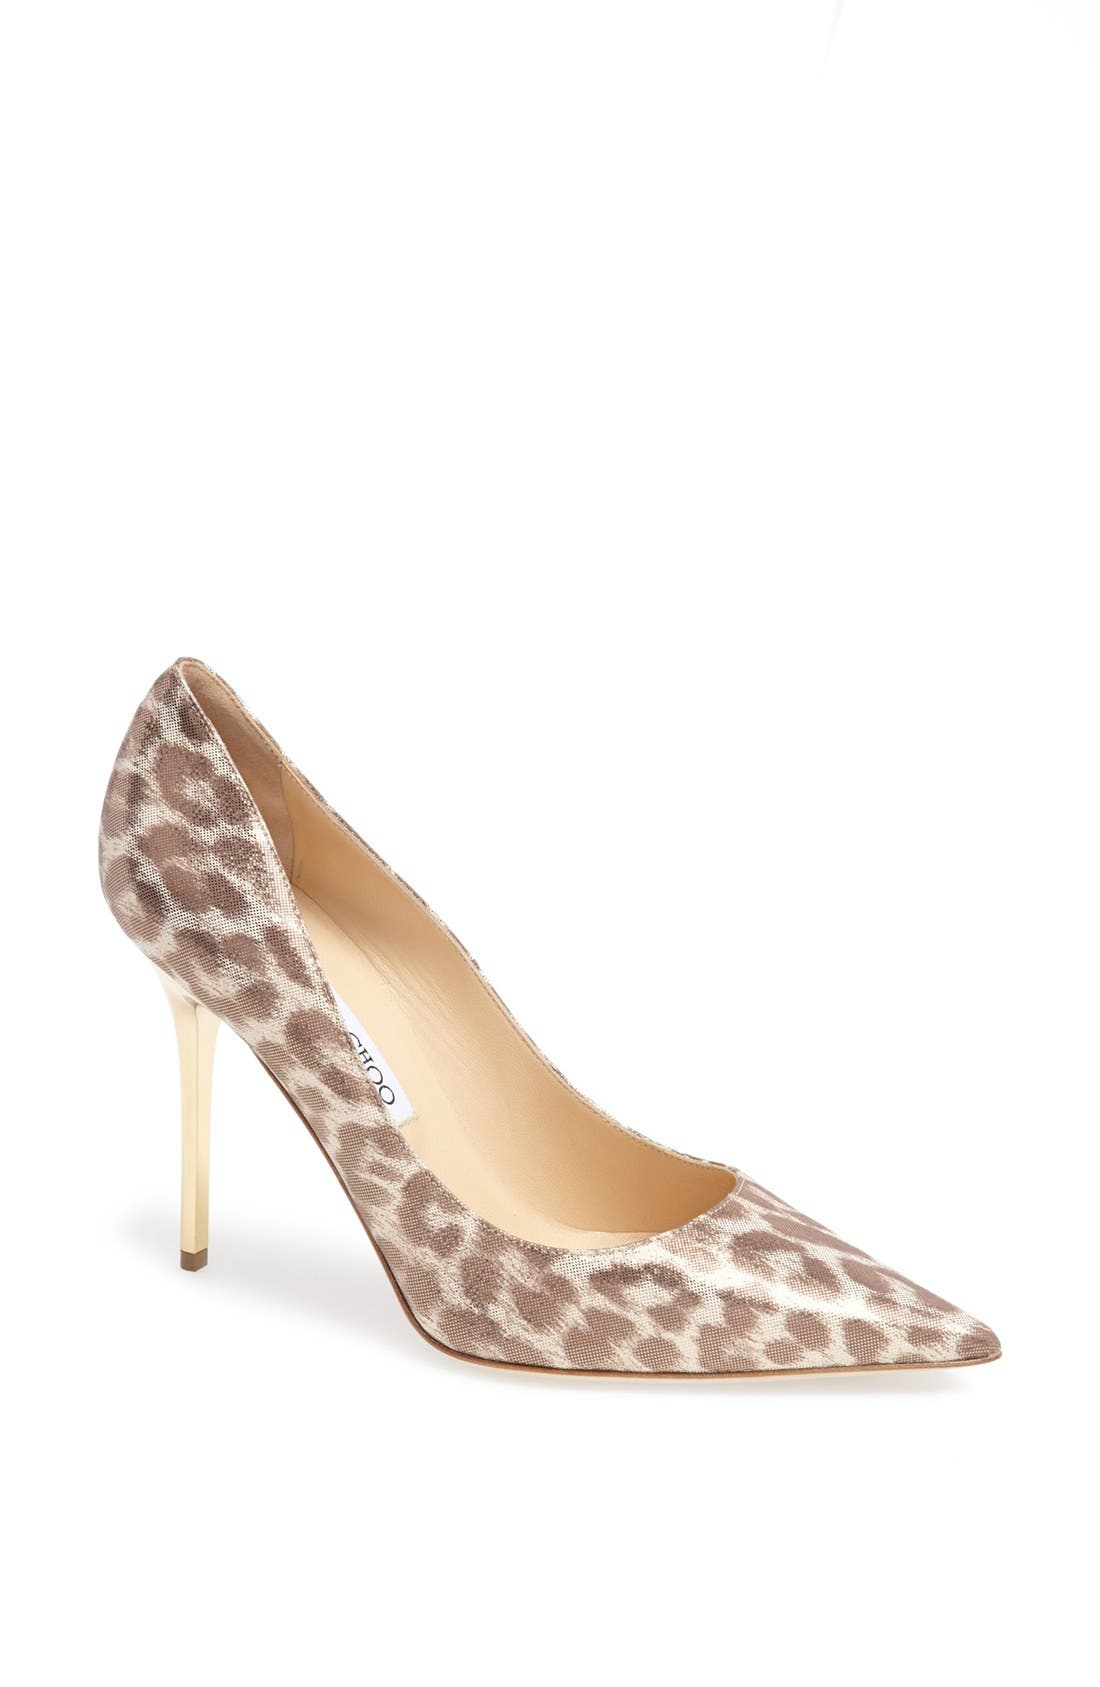 Main Image - Jimmy Choo 'Abel' Pointy Toe Pump